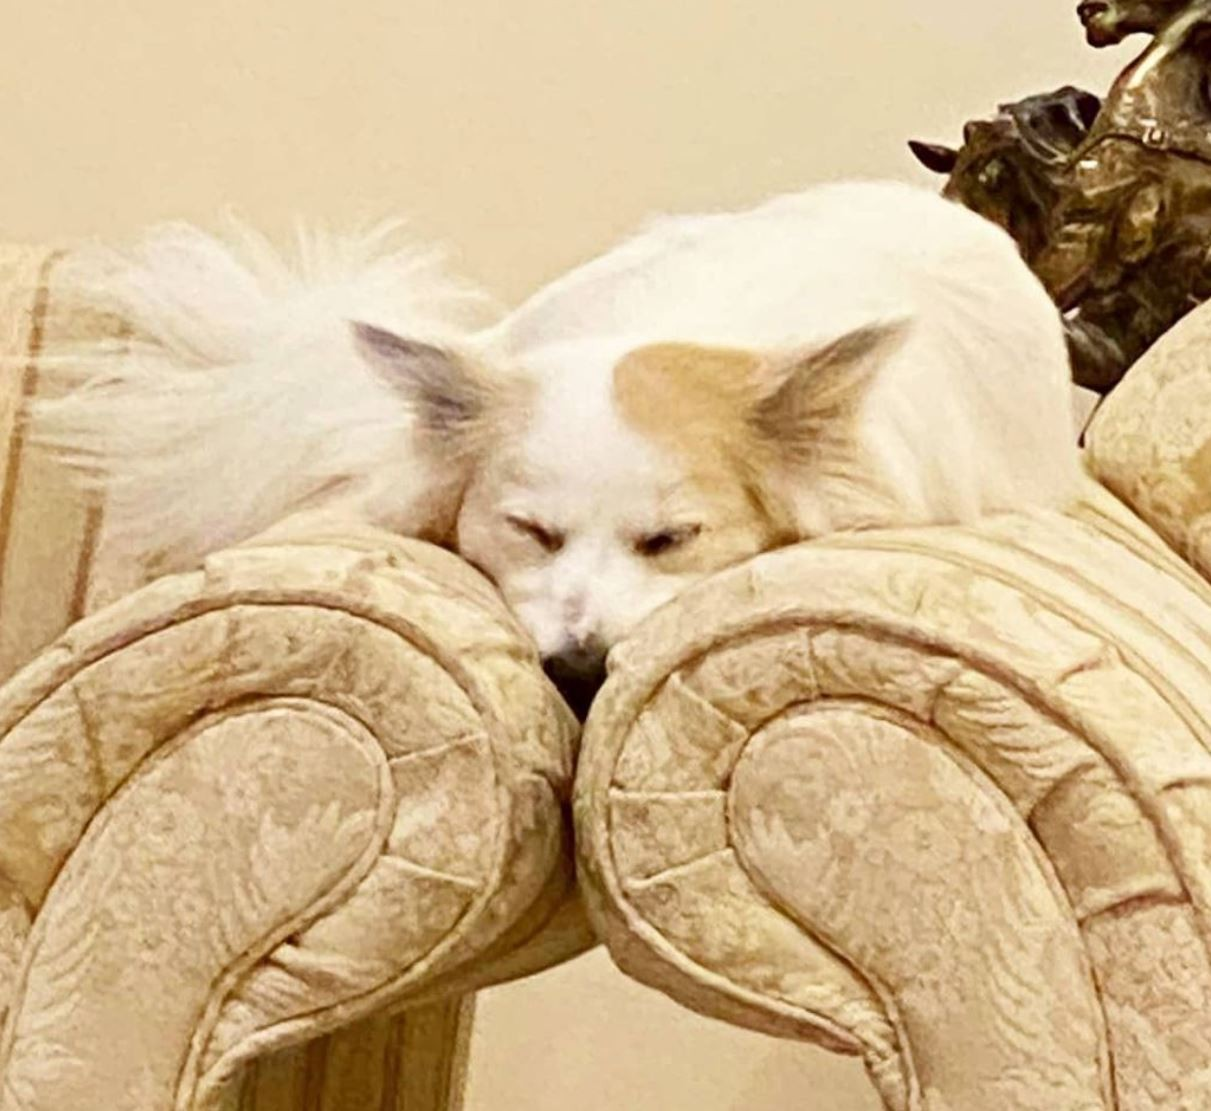 Sleeping dog on a couch